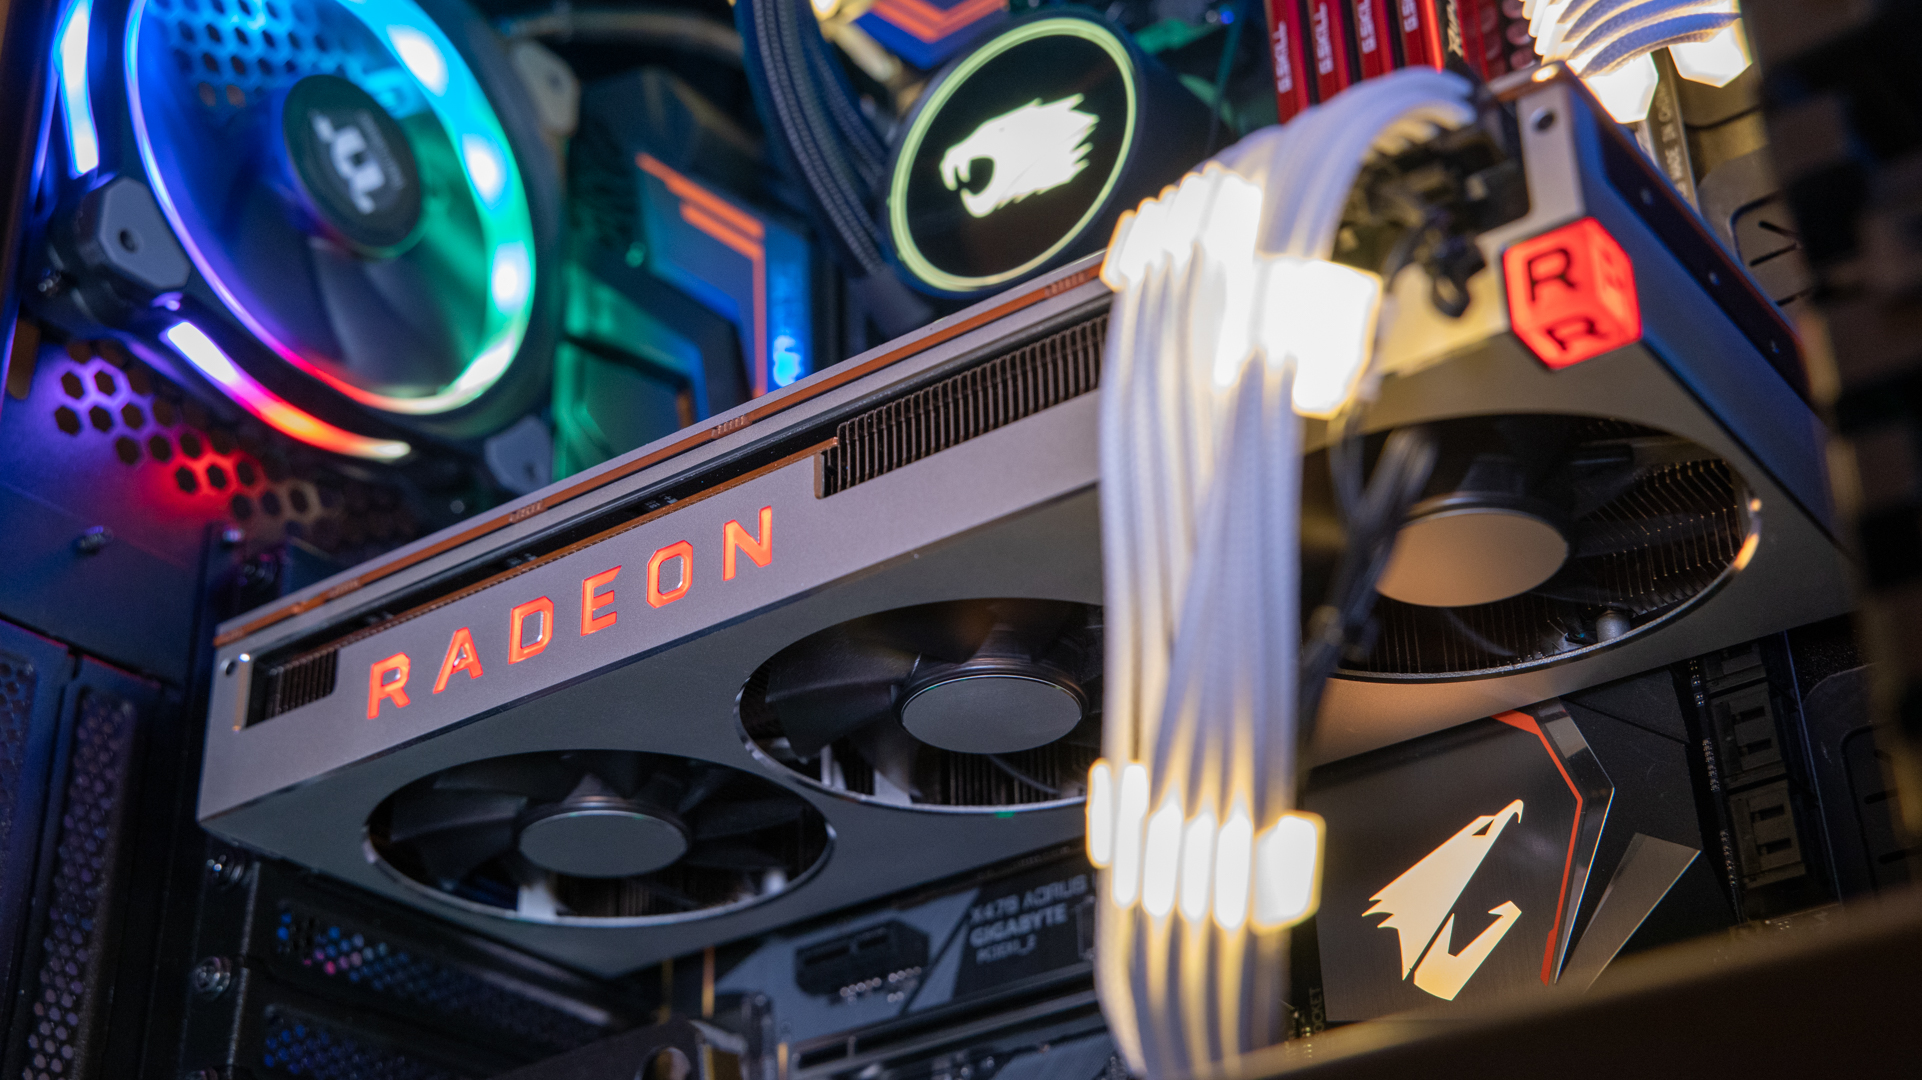 AMD Radeon VII whips past the Nvidia RTX 2080 in these